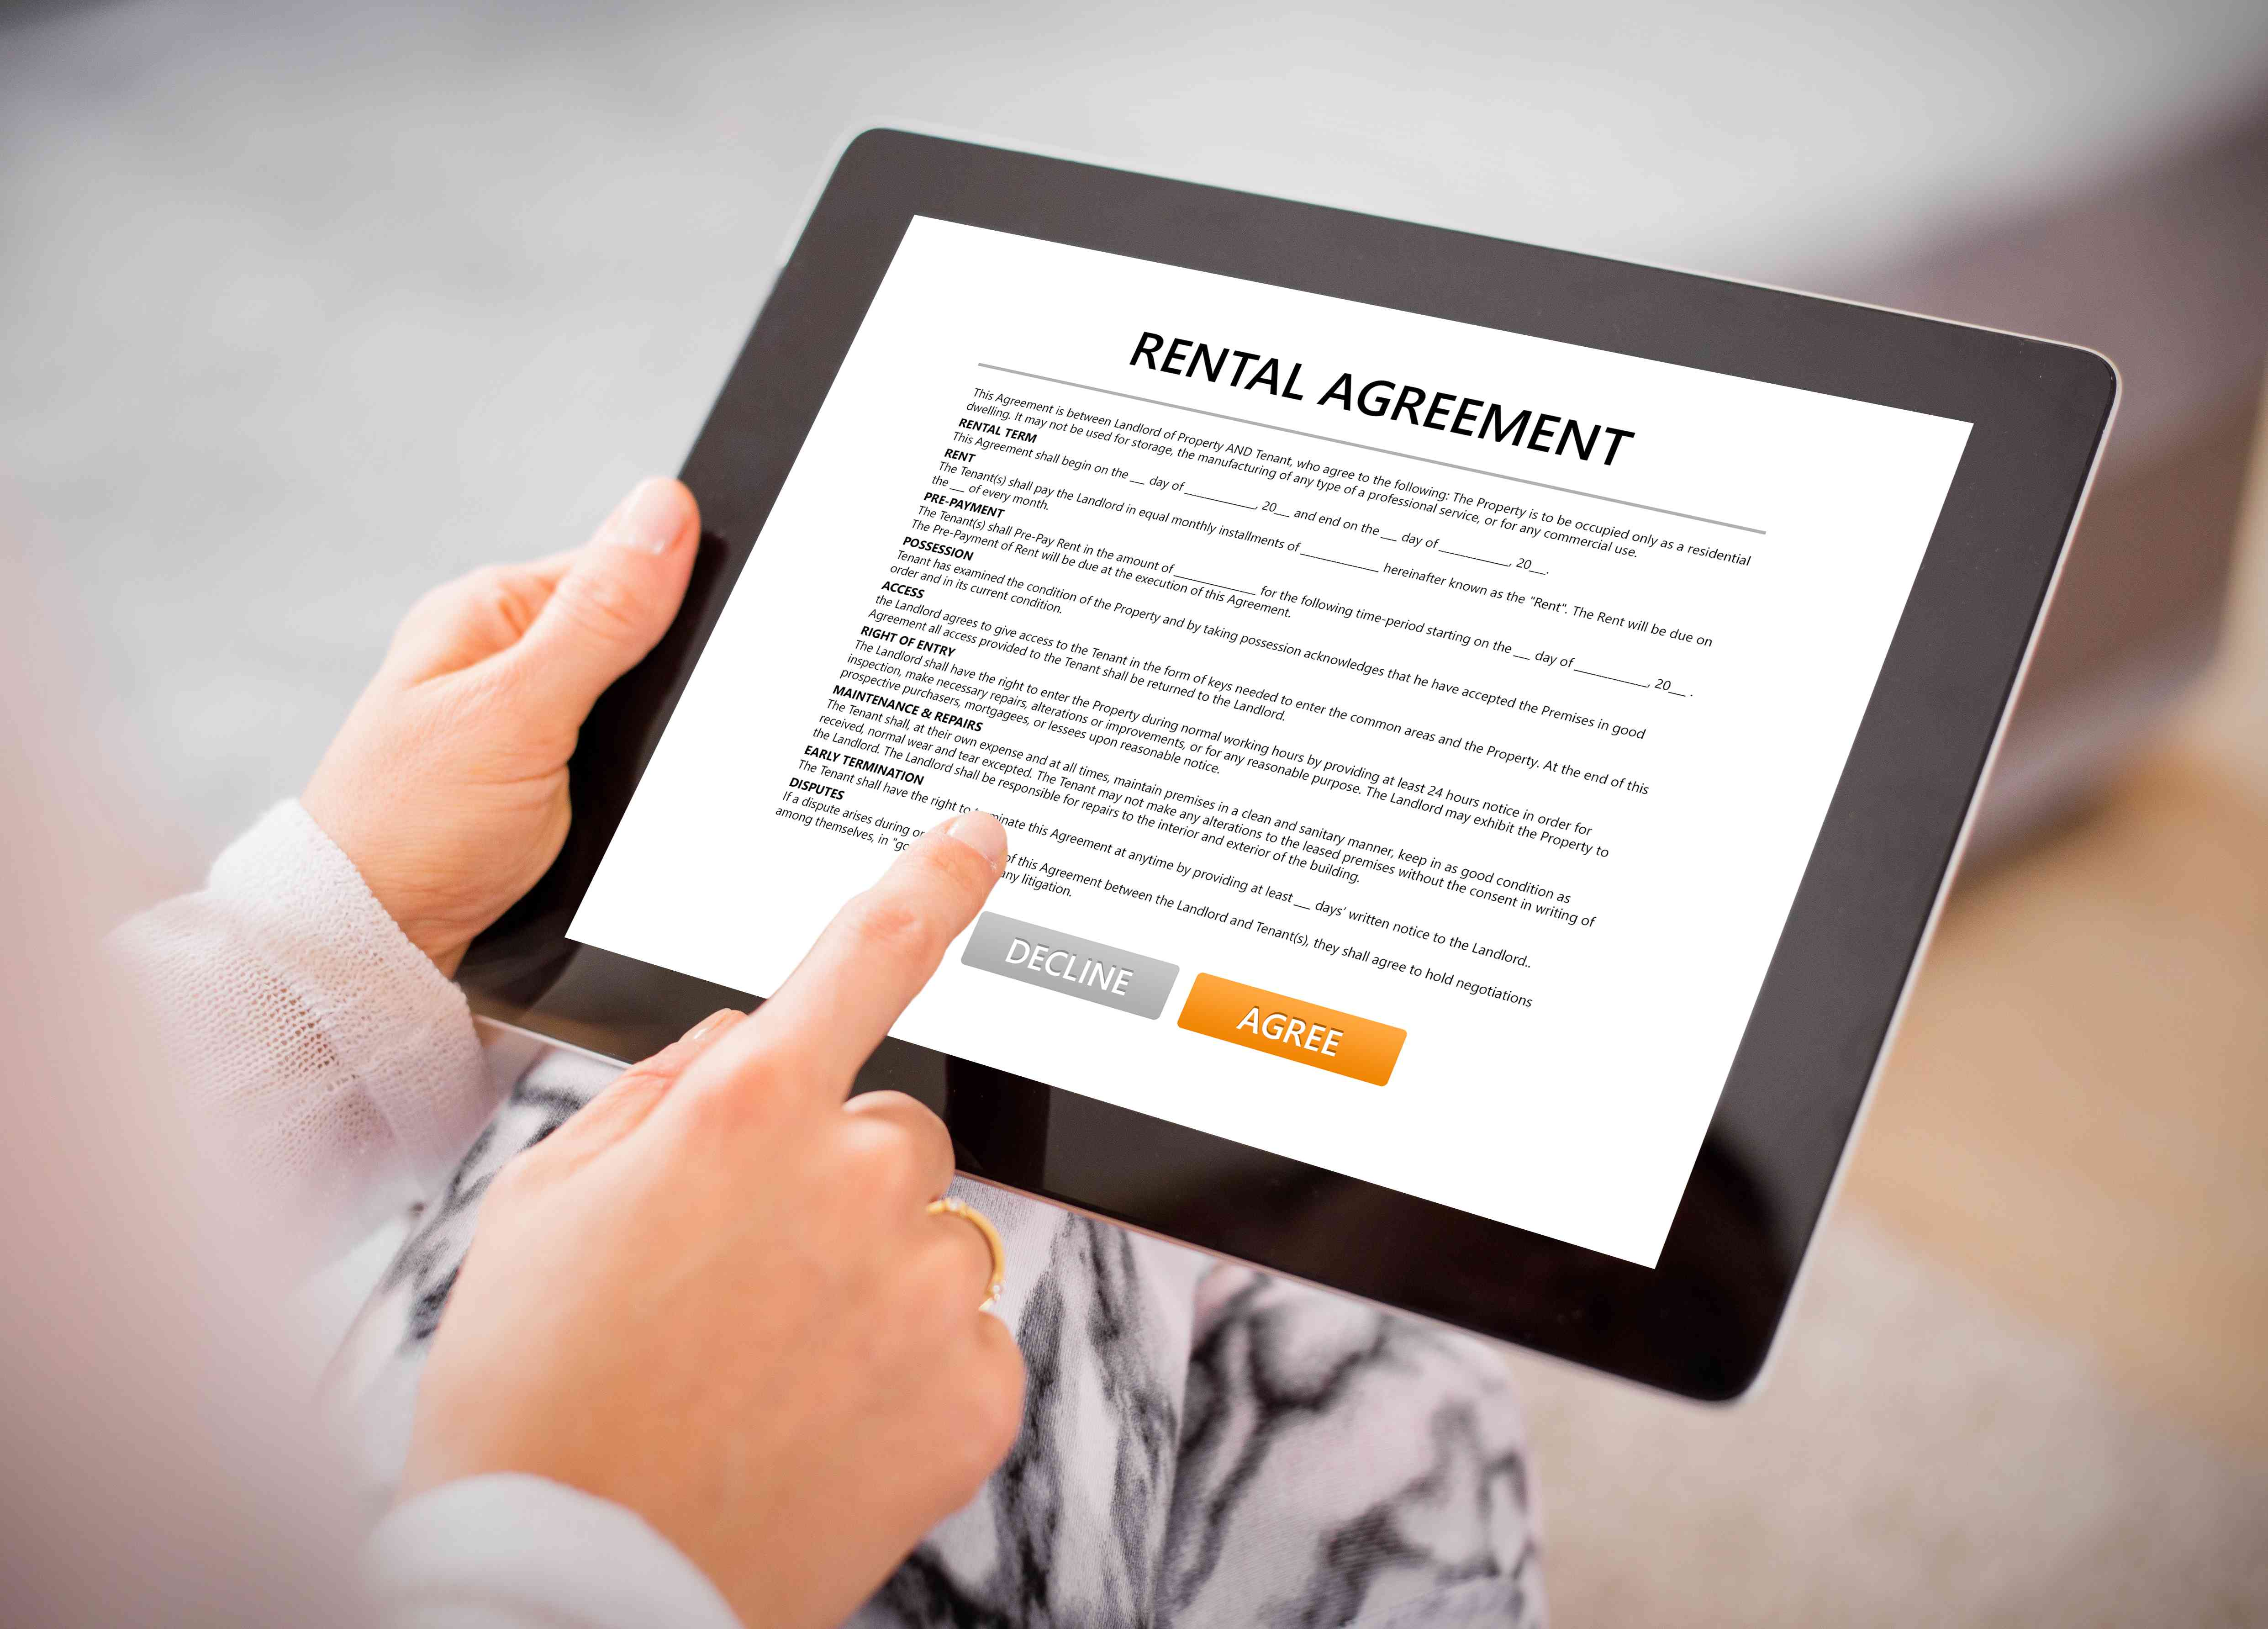 Woman reading rental agreement on tablet.